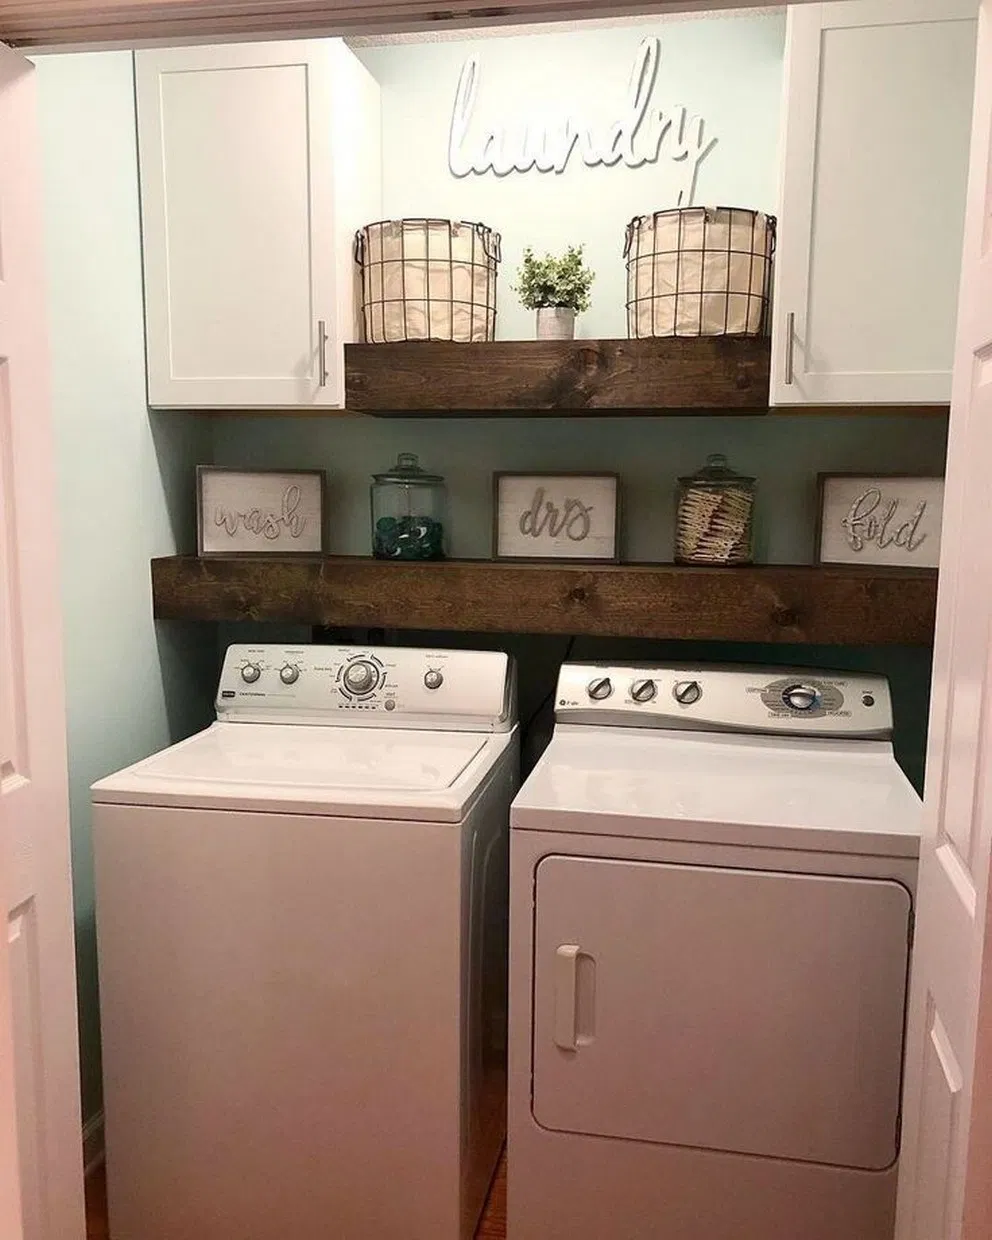 12 brilliant laundry room ideas for small spaces 8 on extraordinary small laundry room design and decorating ideas modest laundry space id=65703